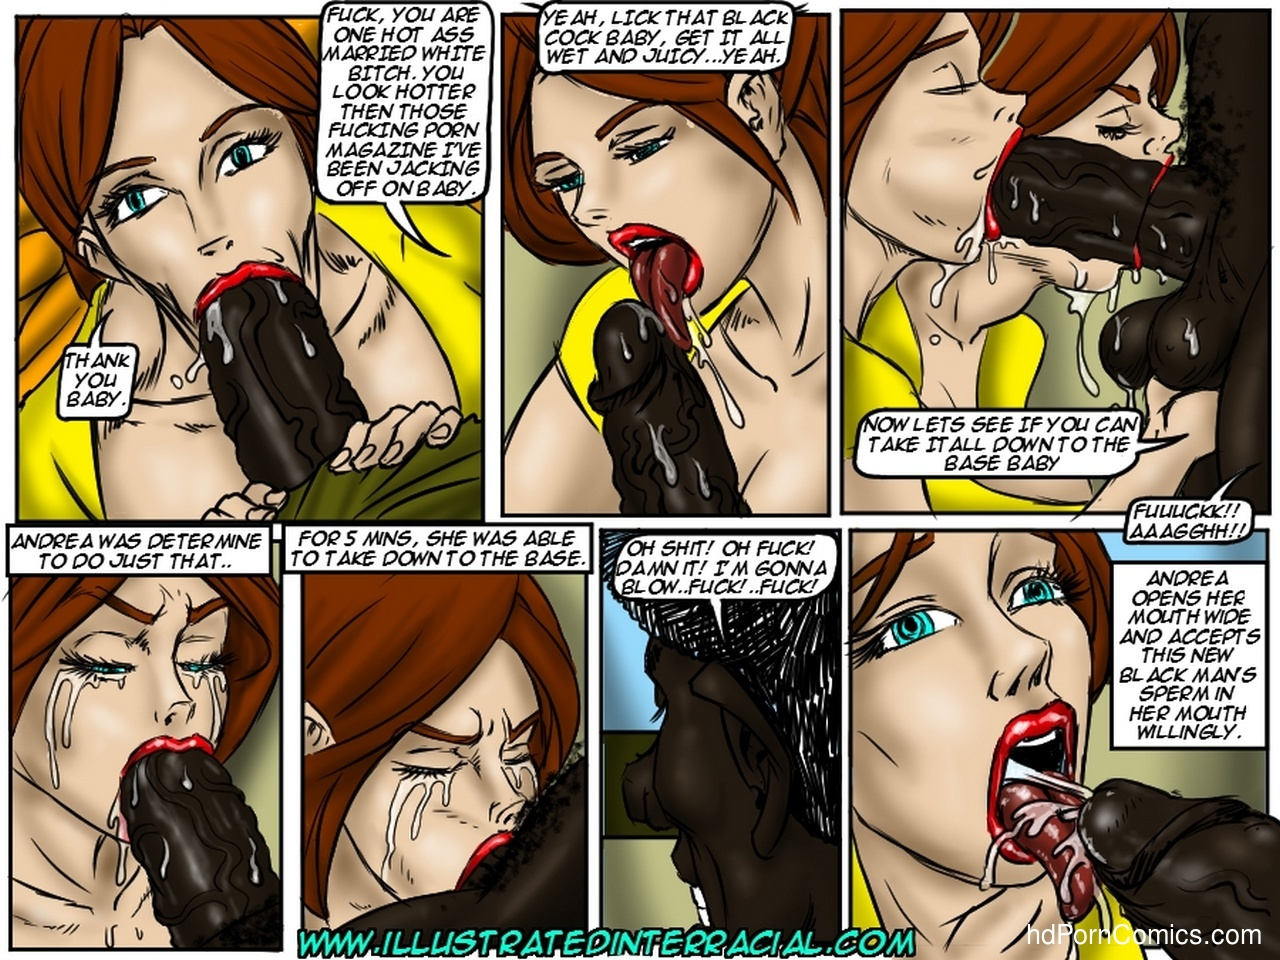 Wife-Gets-Pounded-While-Husband-s-Impounded30 free sex comic